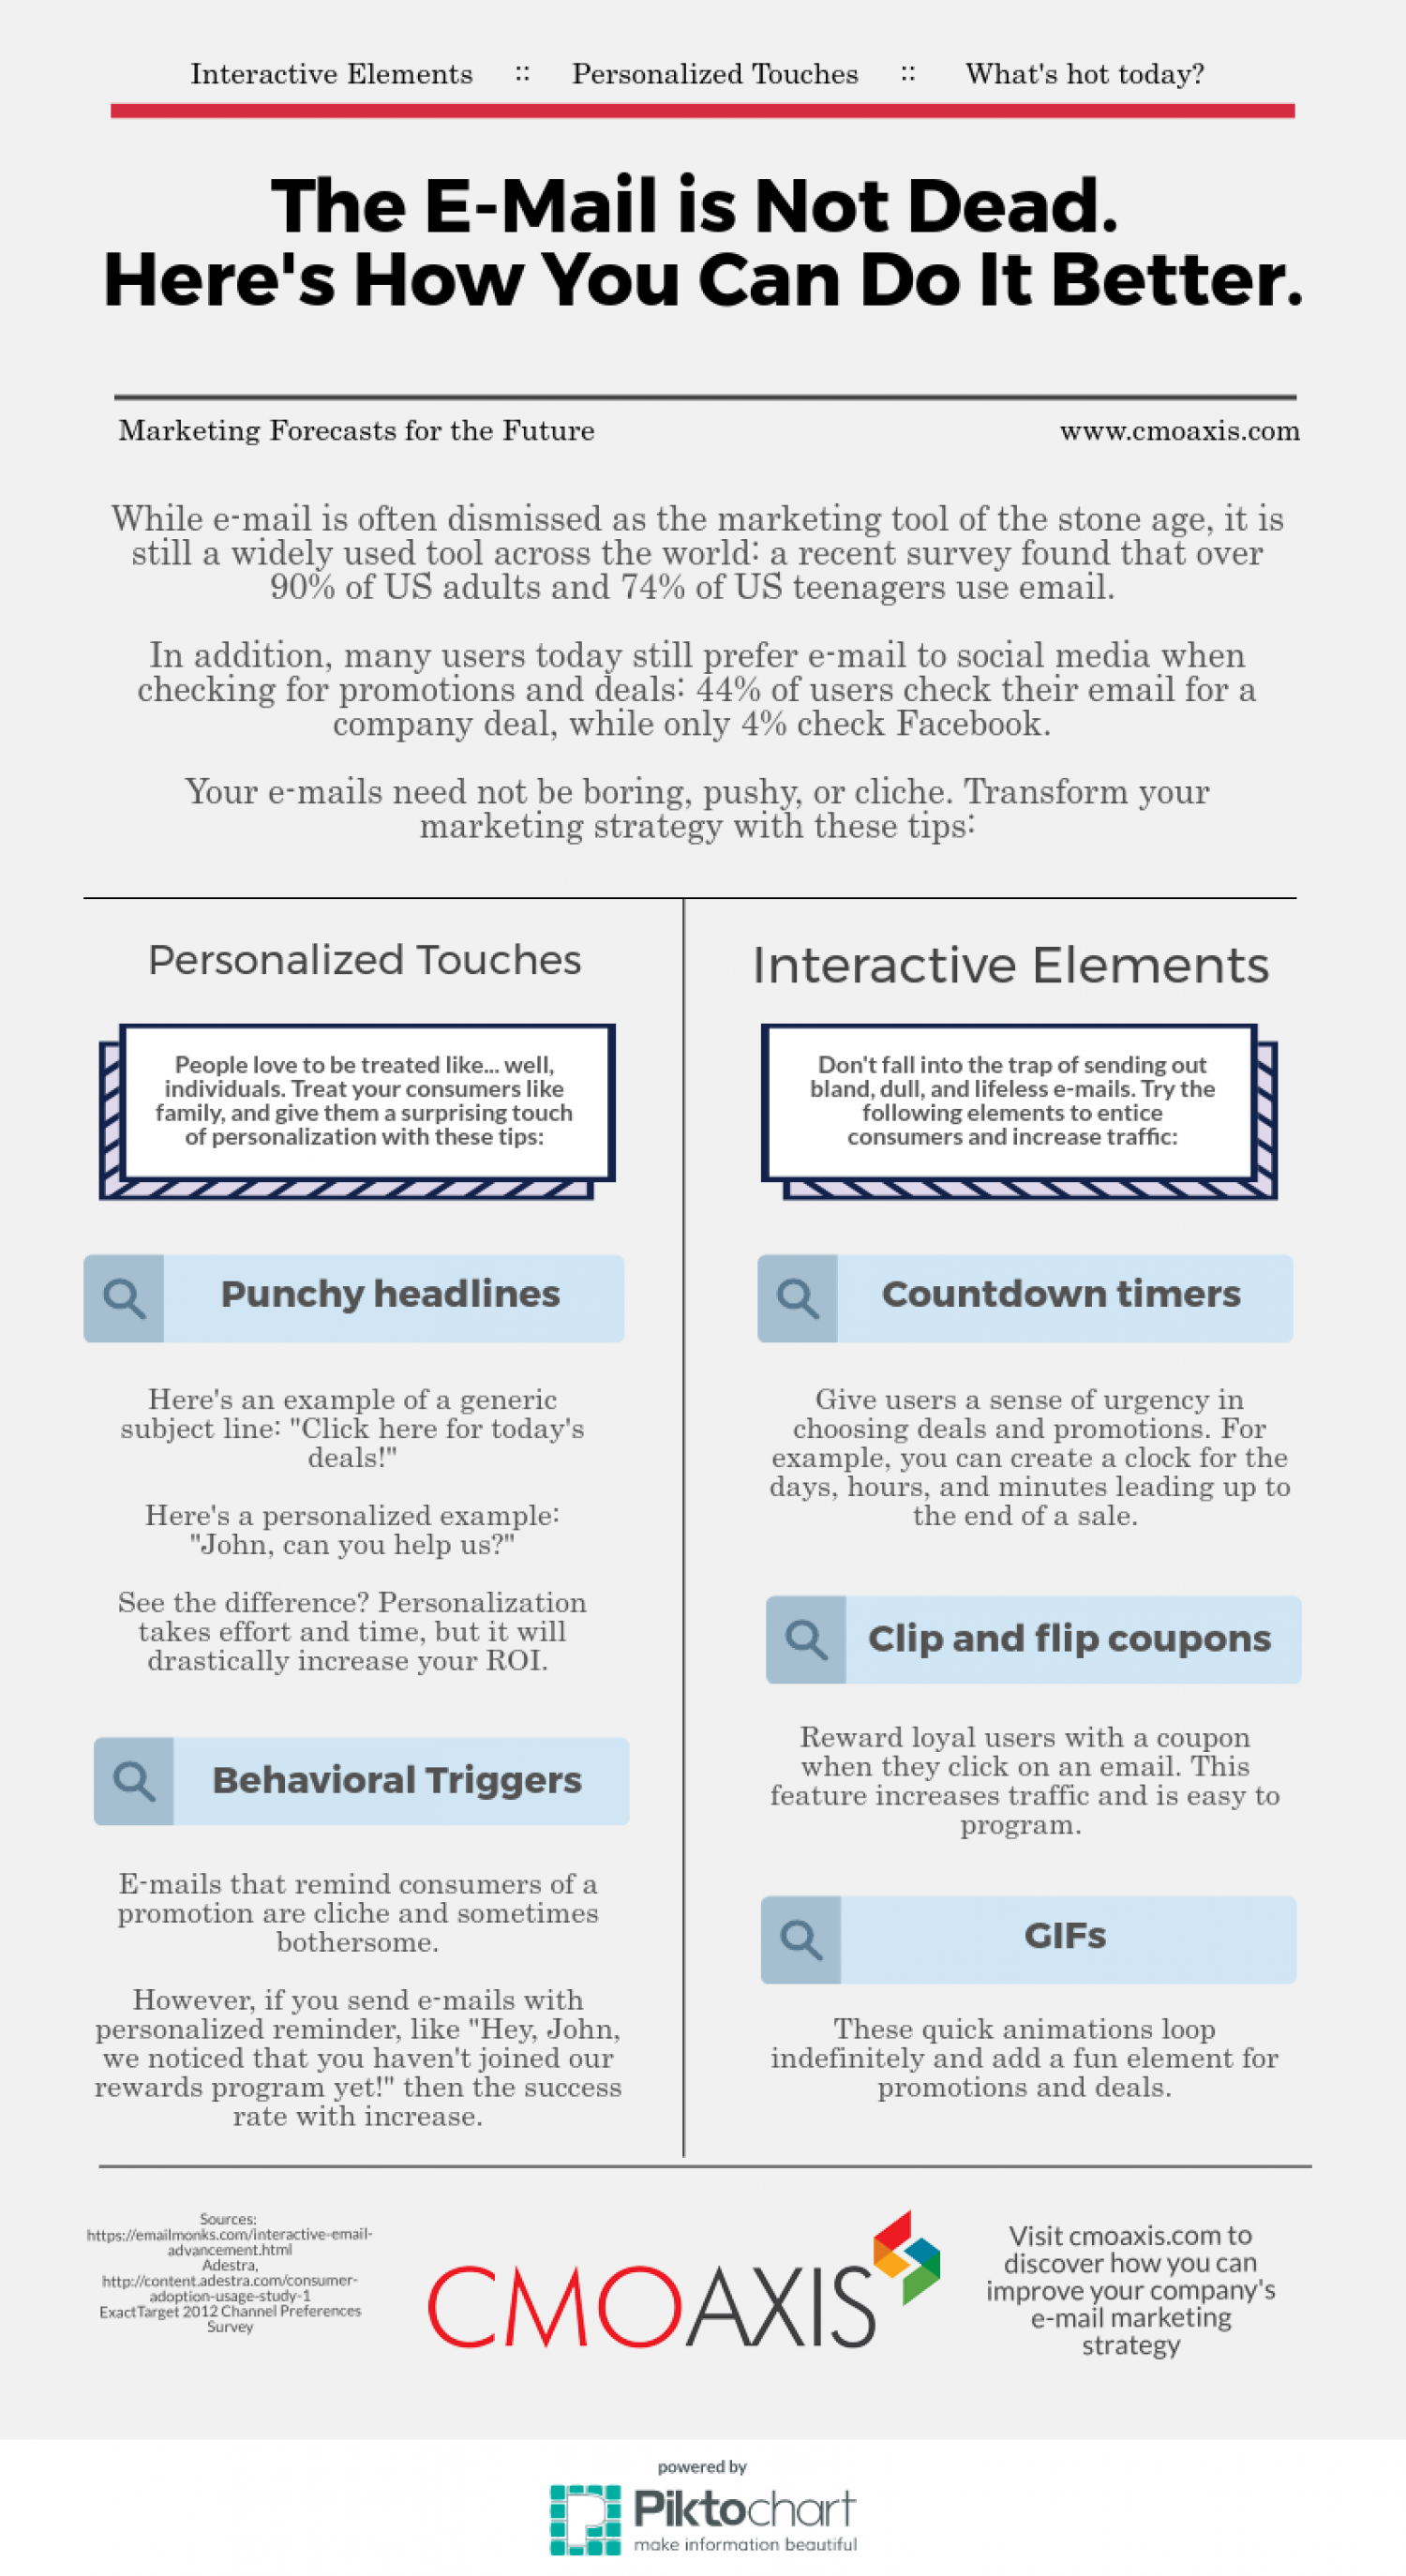 The E-mail is not dead. Here's how you can do it better. Infographic